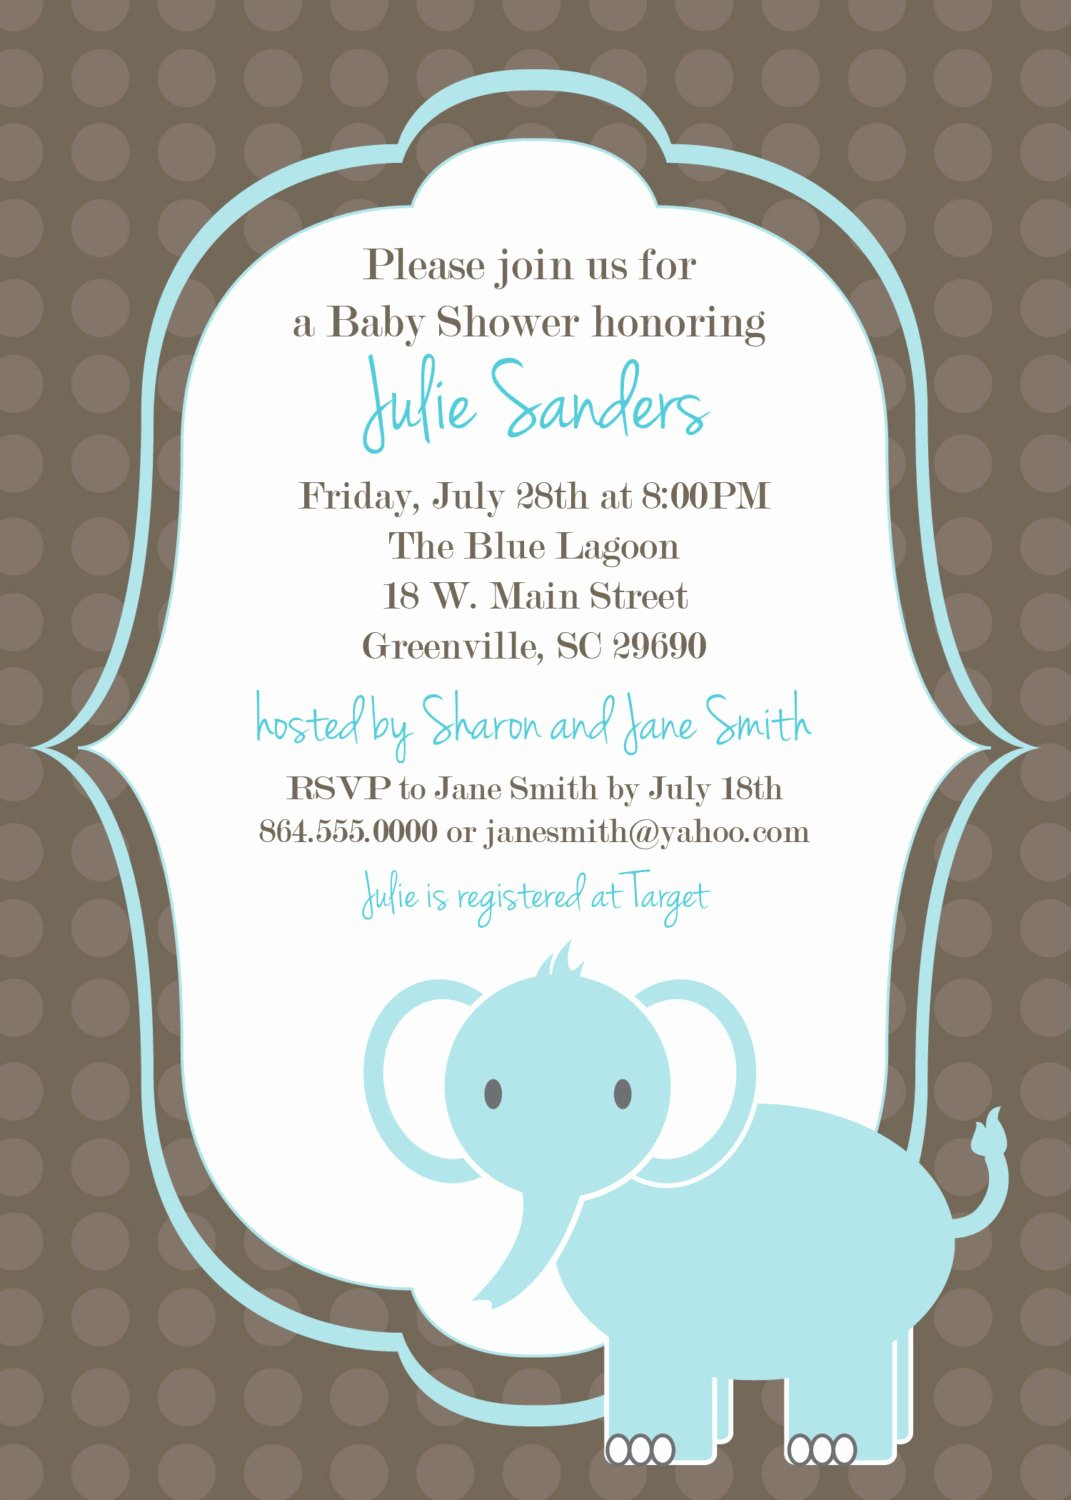 Baby Shower Invite Template Fresh Printable Baby Shower Invitation Elephant Boy by Ohcreative E